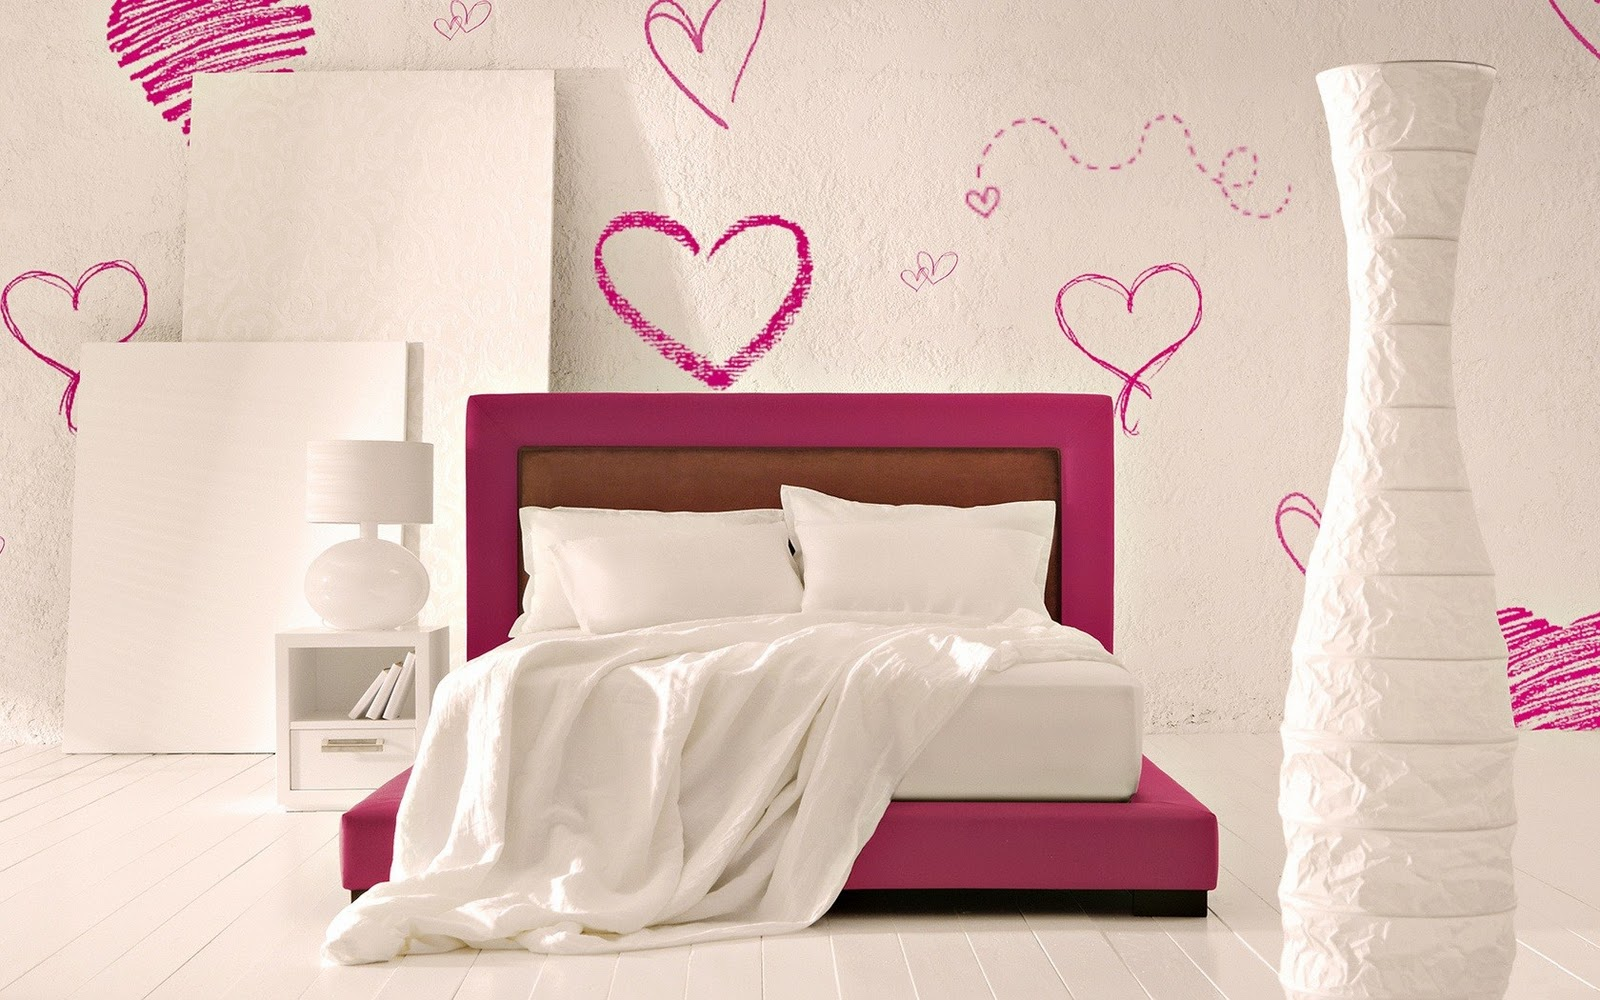 Wallpaper Love couple Bed : Interior Bed Hearts Style HD Wallpaper Love Wallpapers Romantic Wallpapers - Stock Photos ...